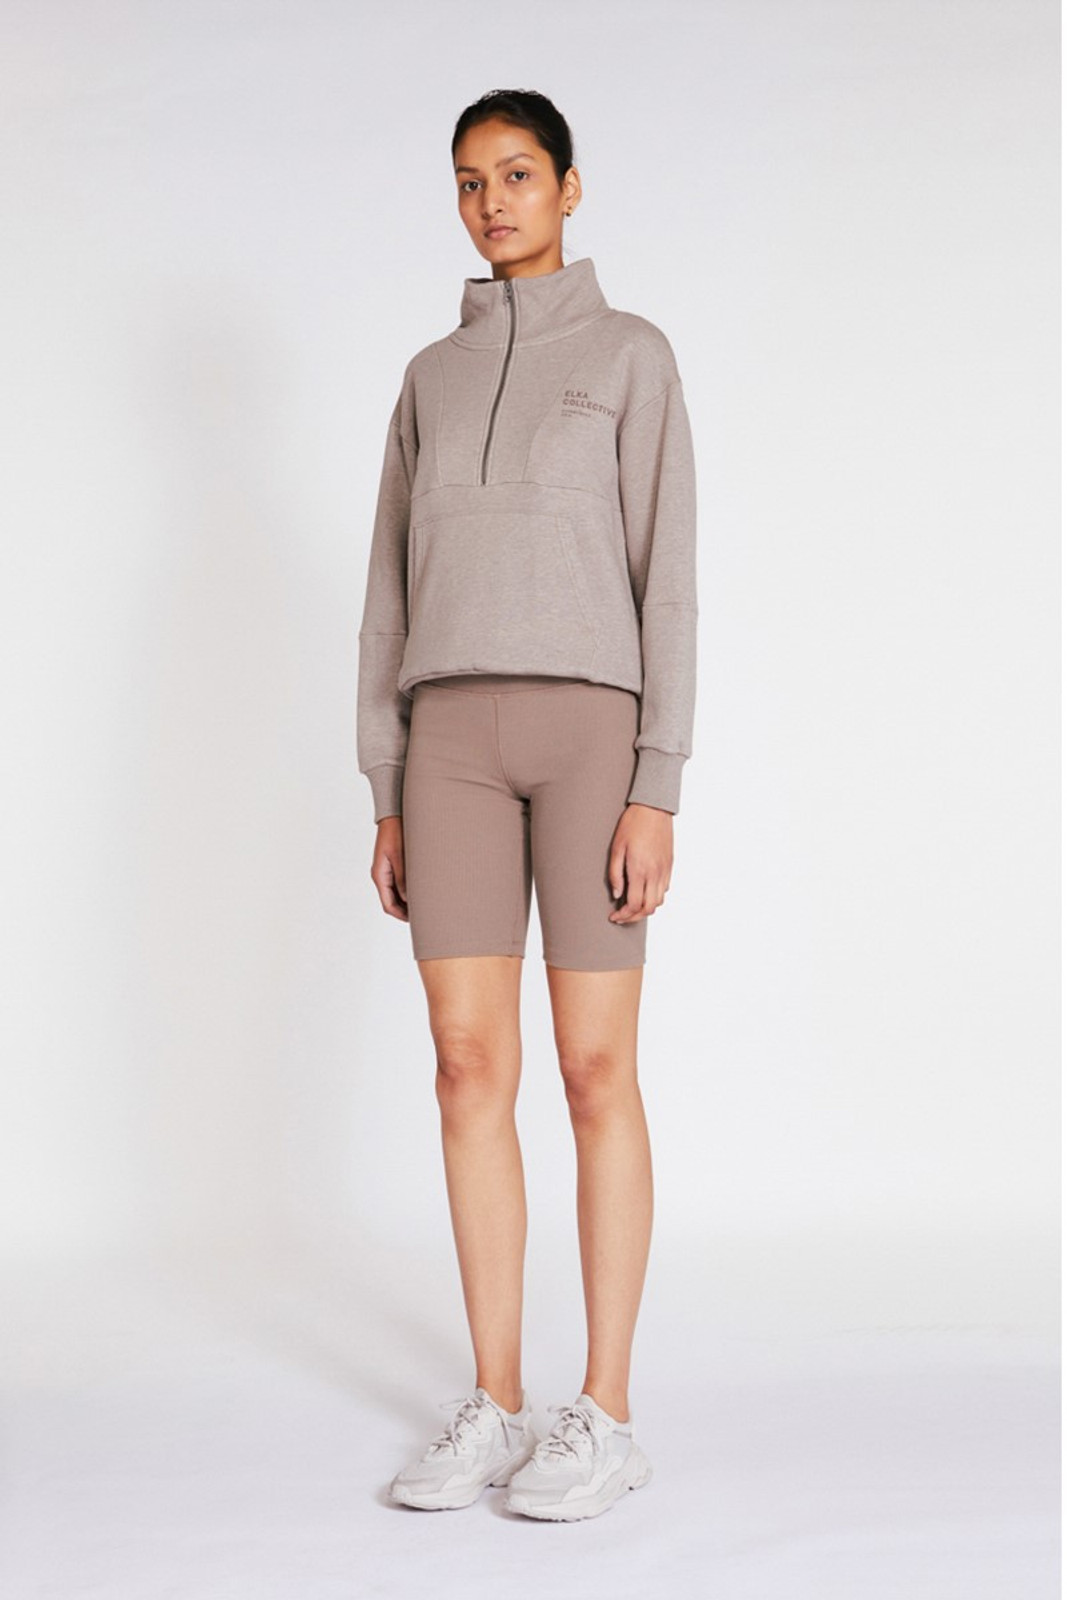 Elka Collective Mindful Sweater Neutrals  2